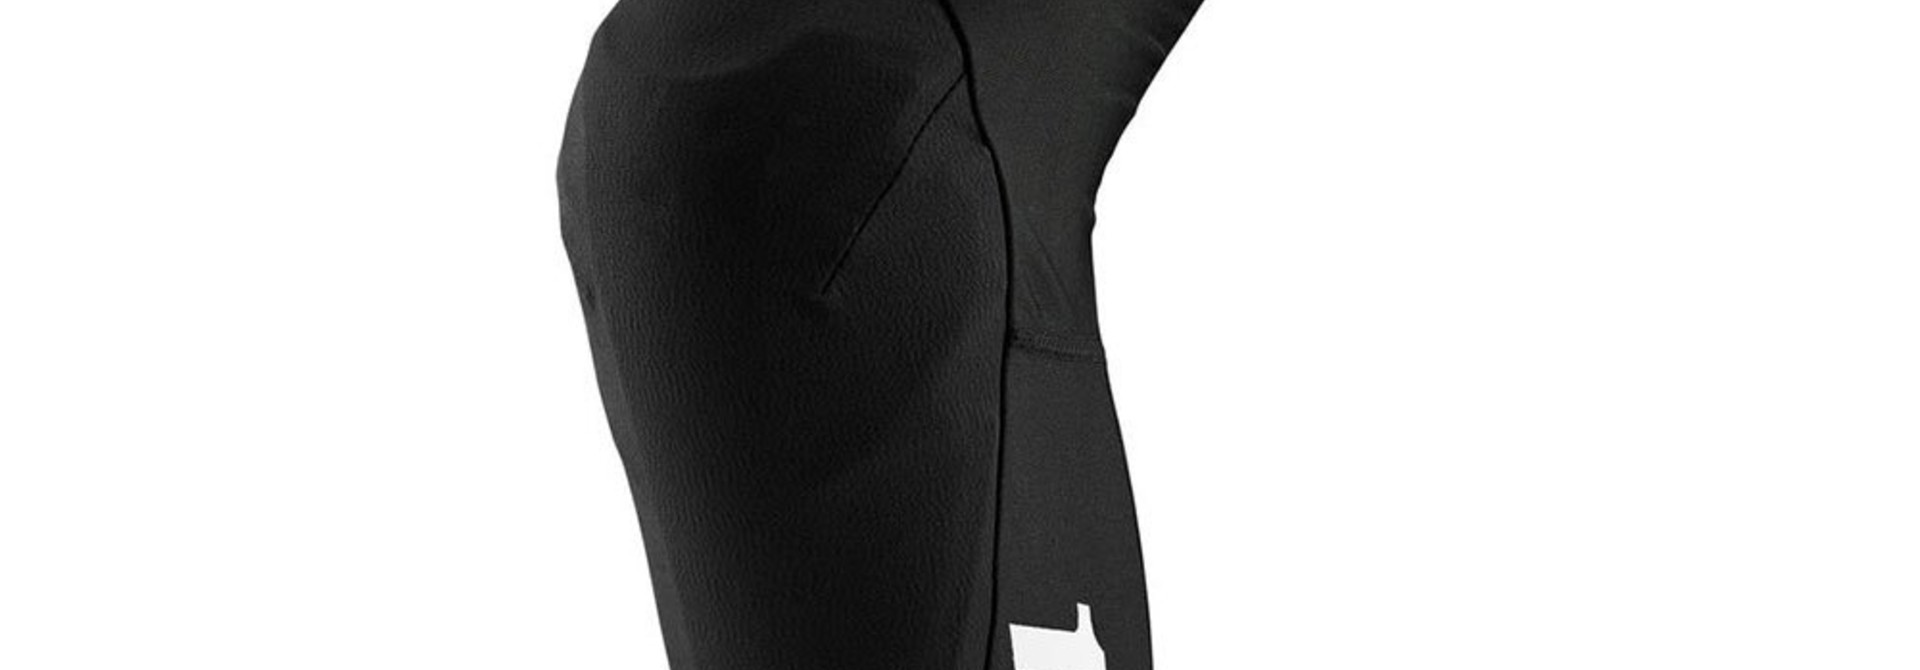 100% Teratec Soft Knee Pads/Armour, Black